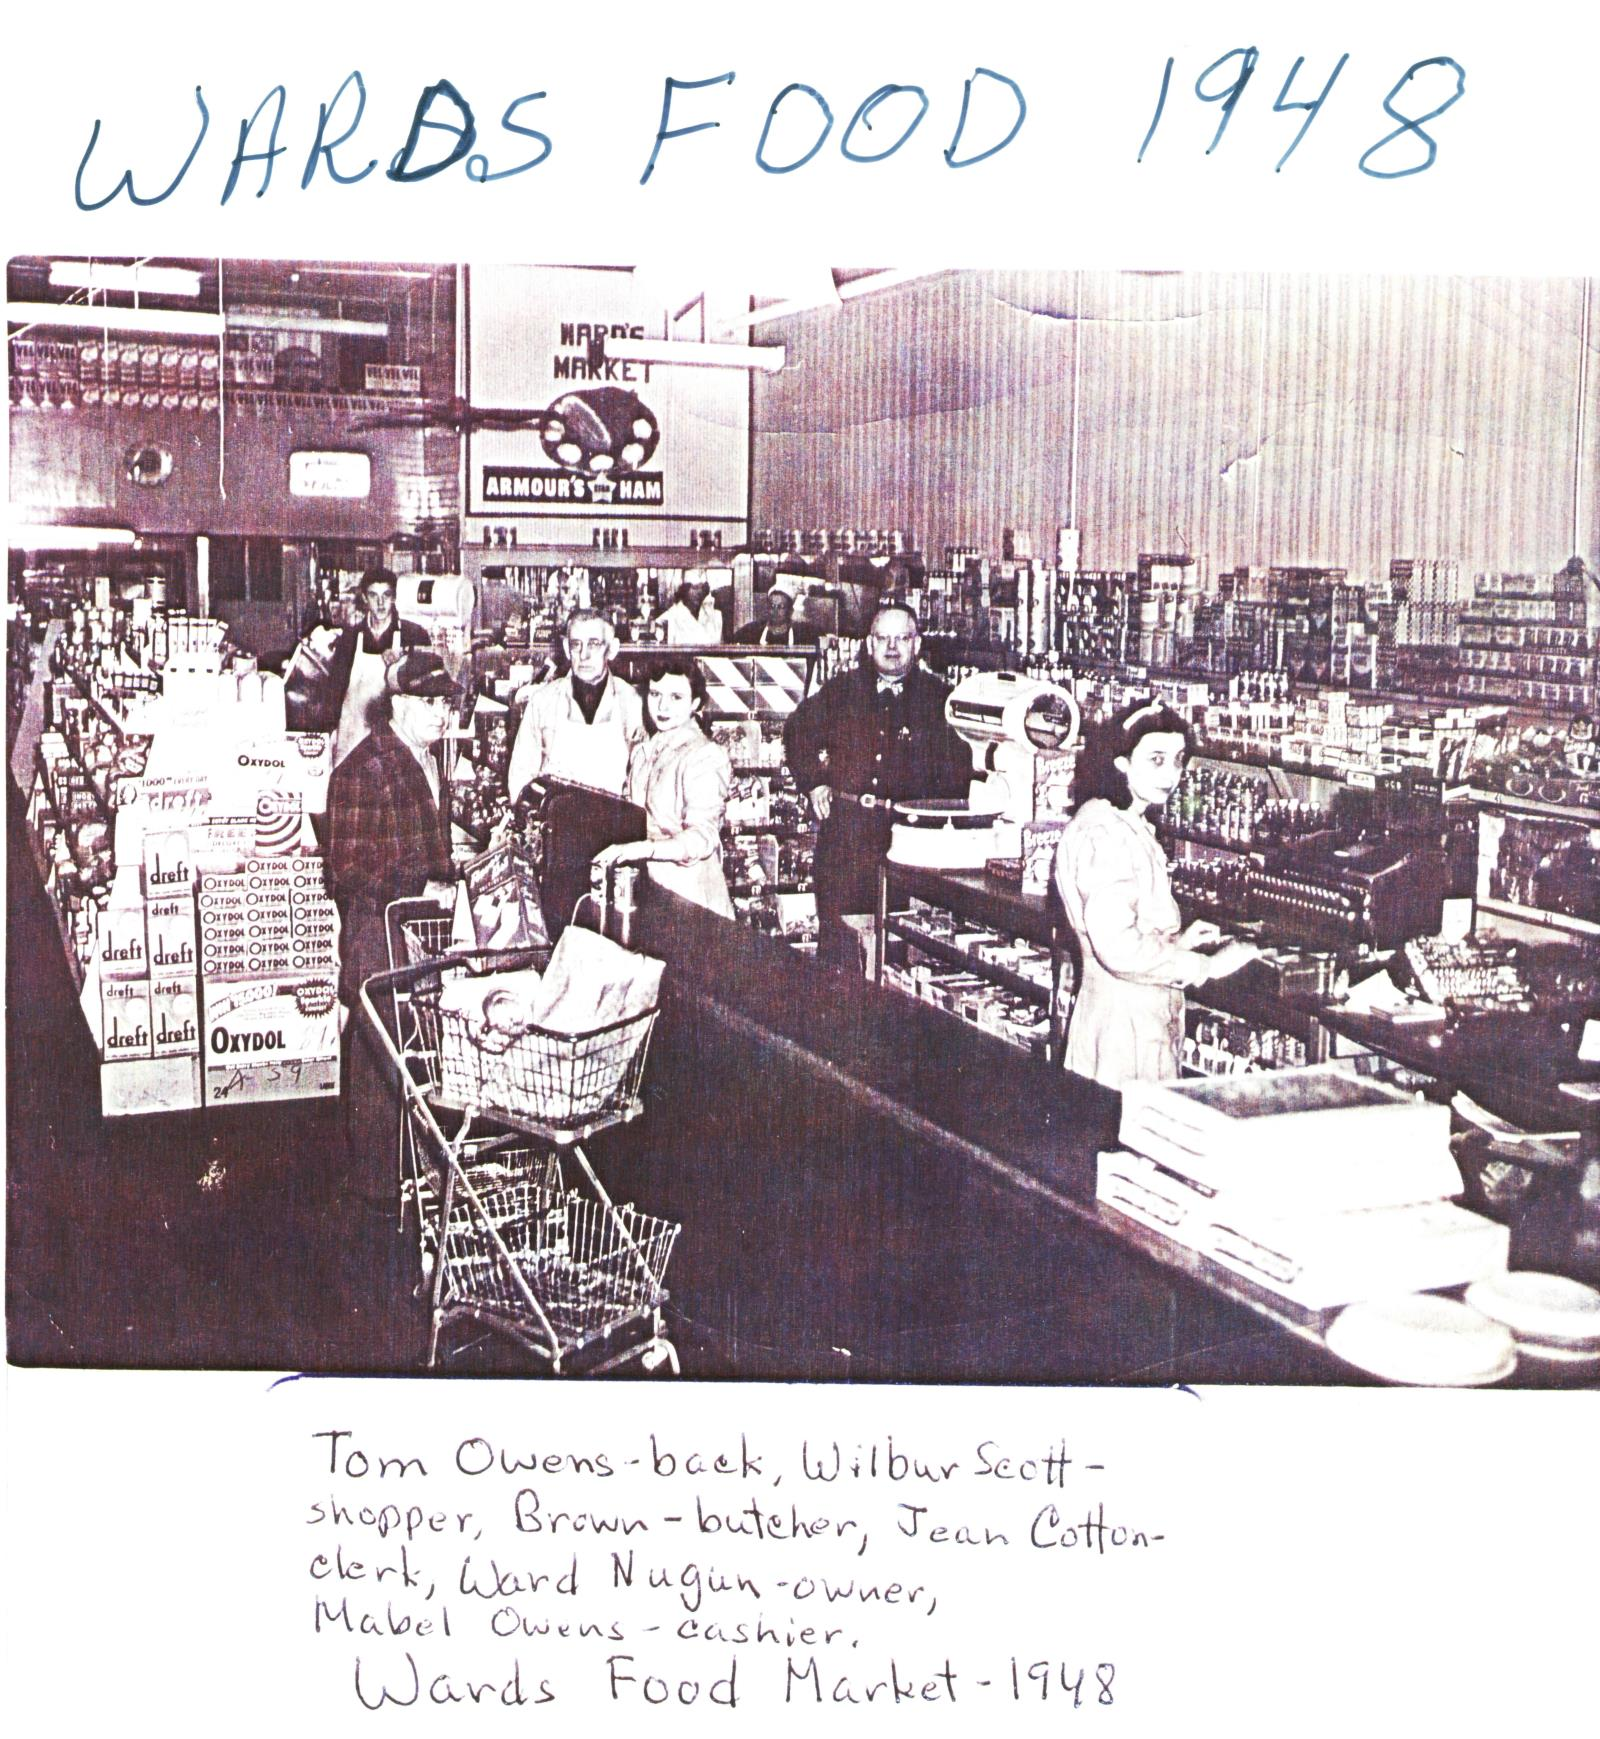 WardsFoods1948_Inside